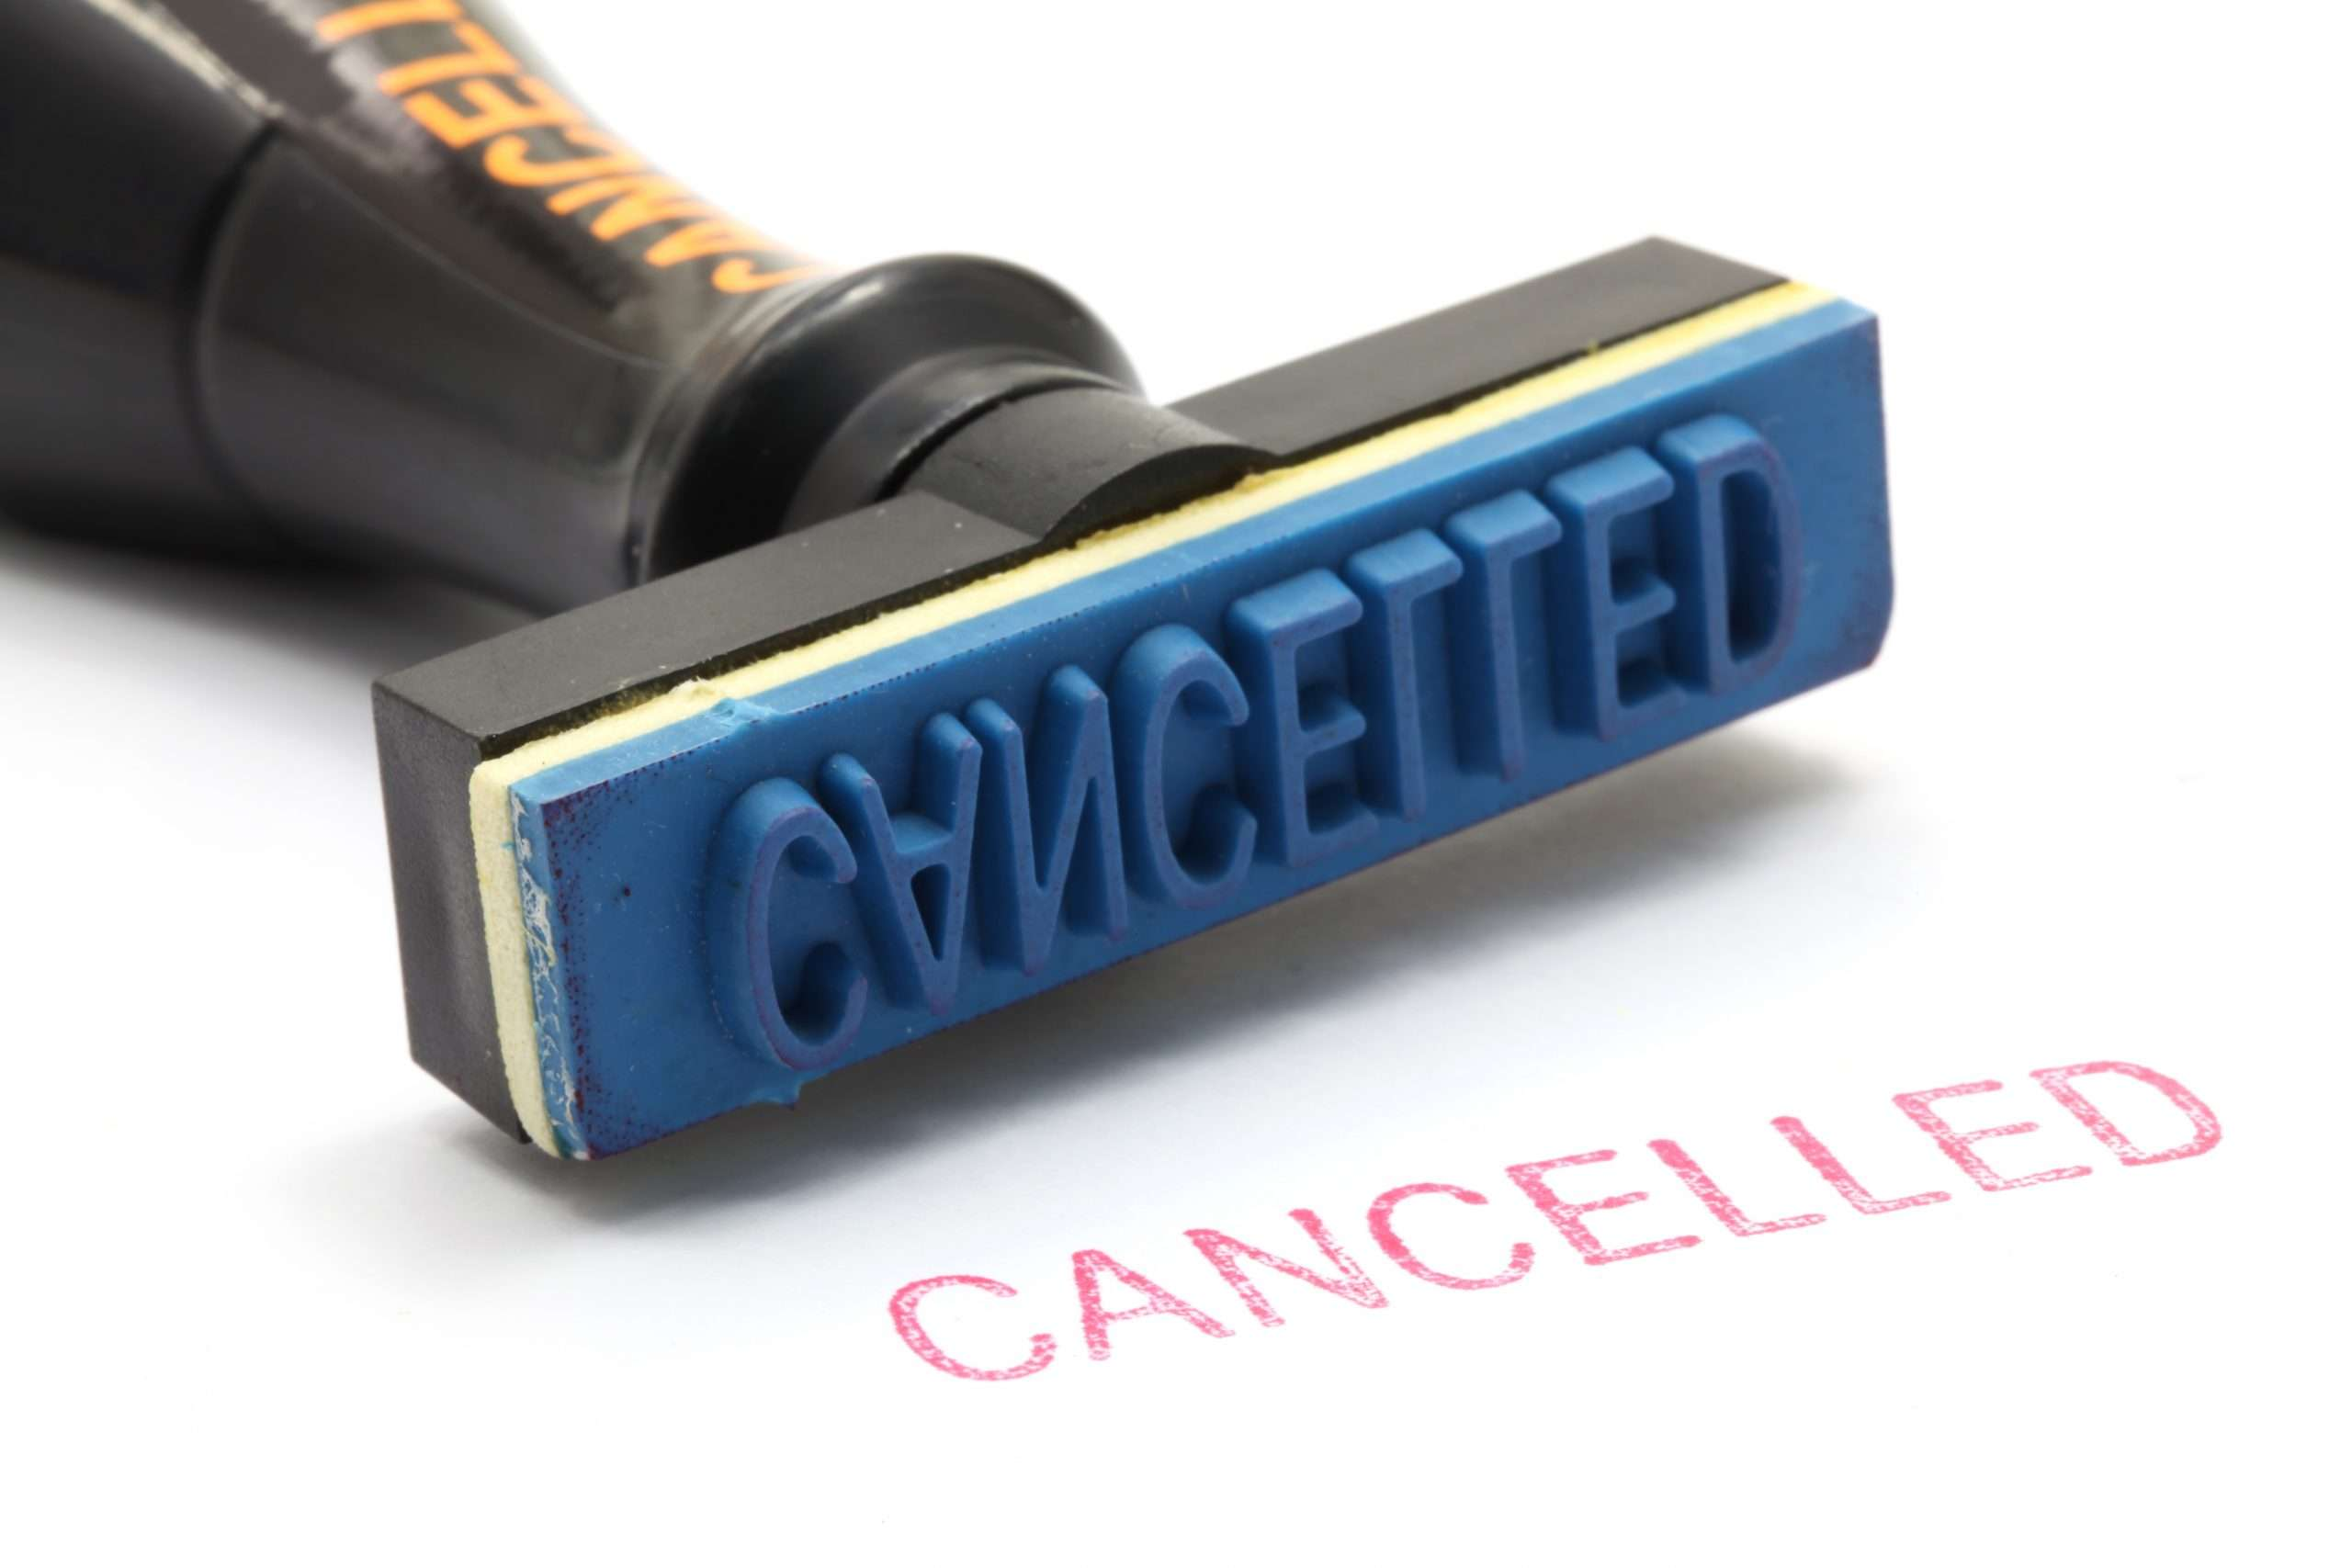 A rubber stamp with the work cancelled that can be used as you cancel services and subscriptions for your small business